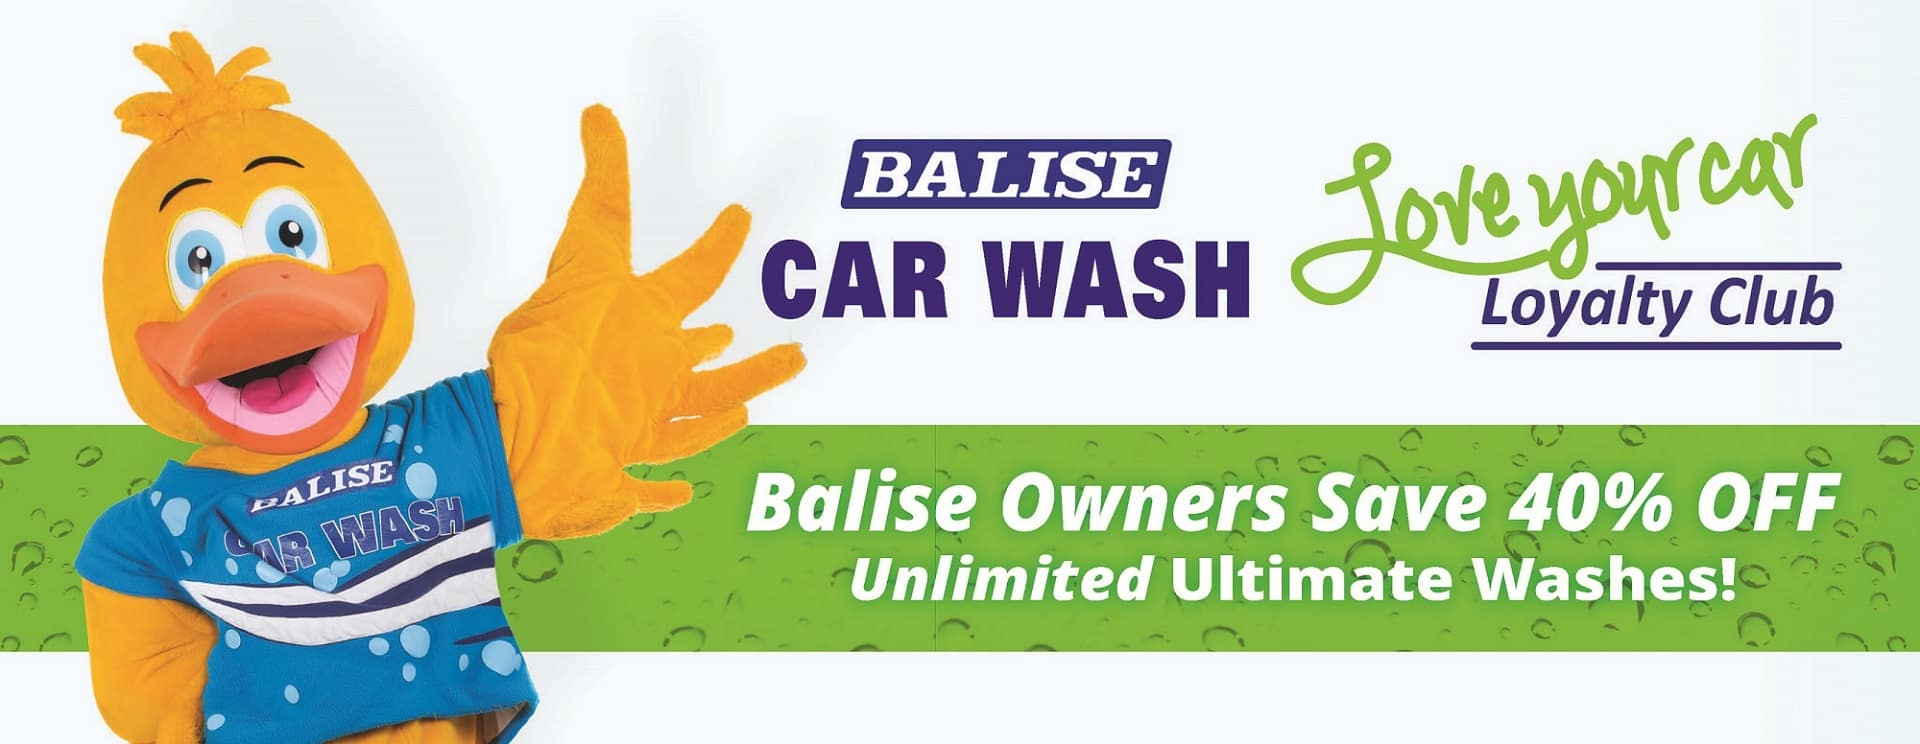 Balise Owners Save 40%